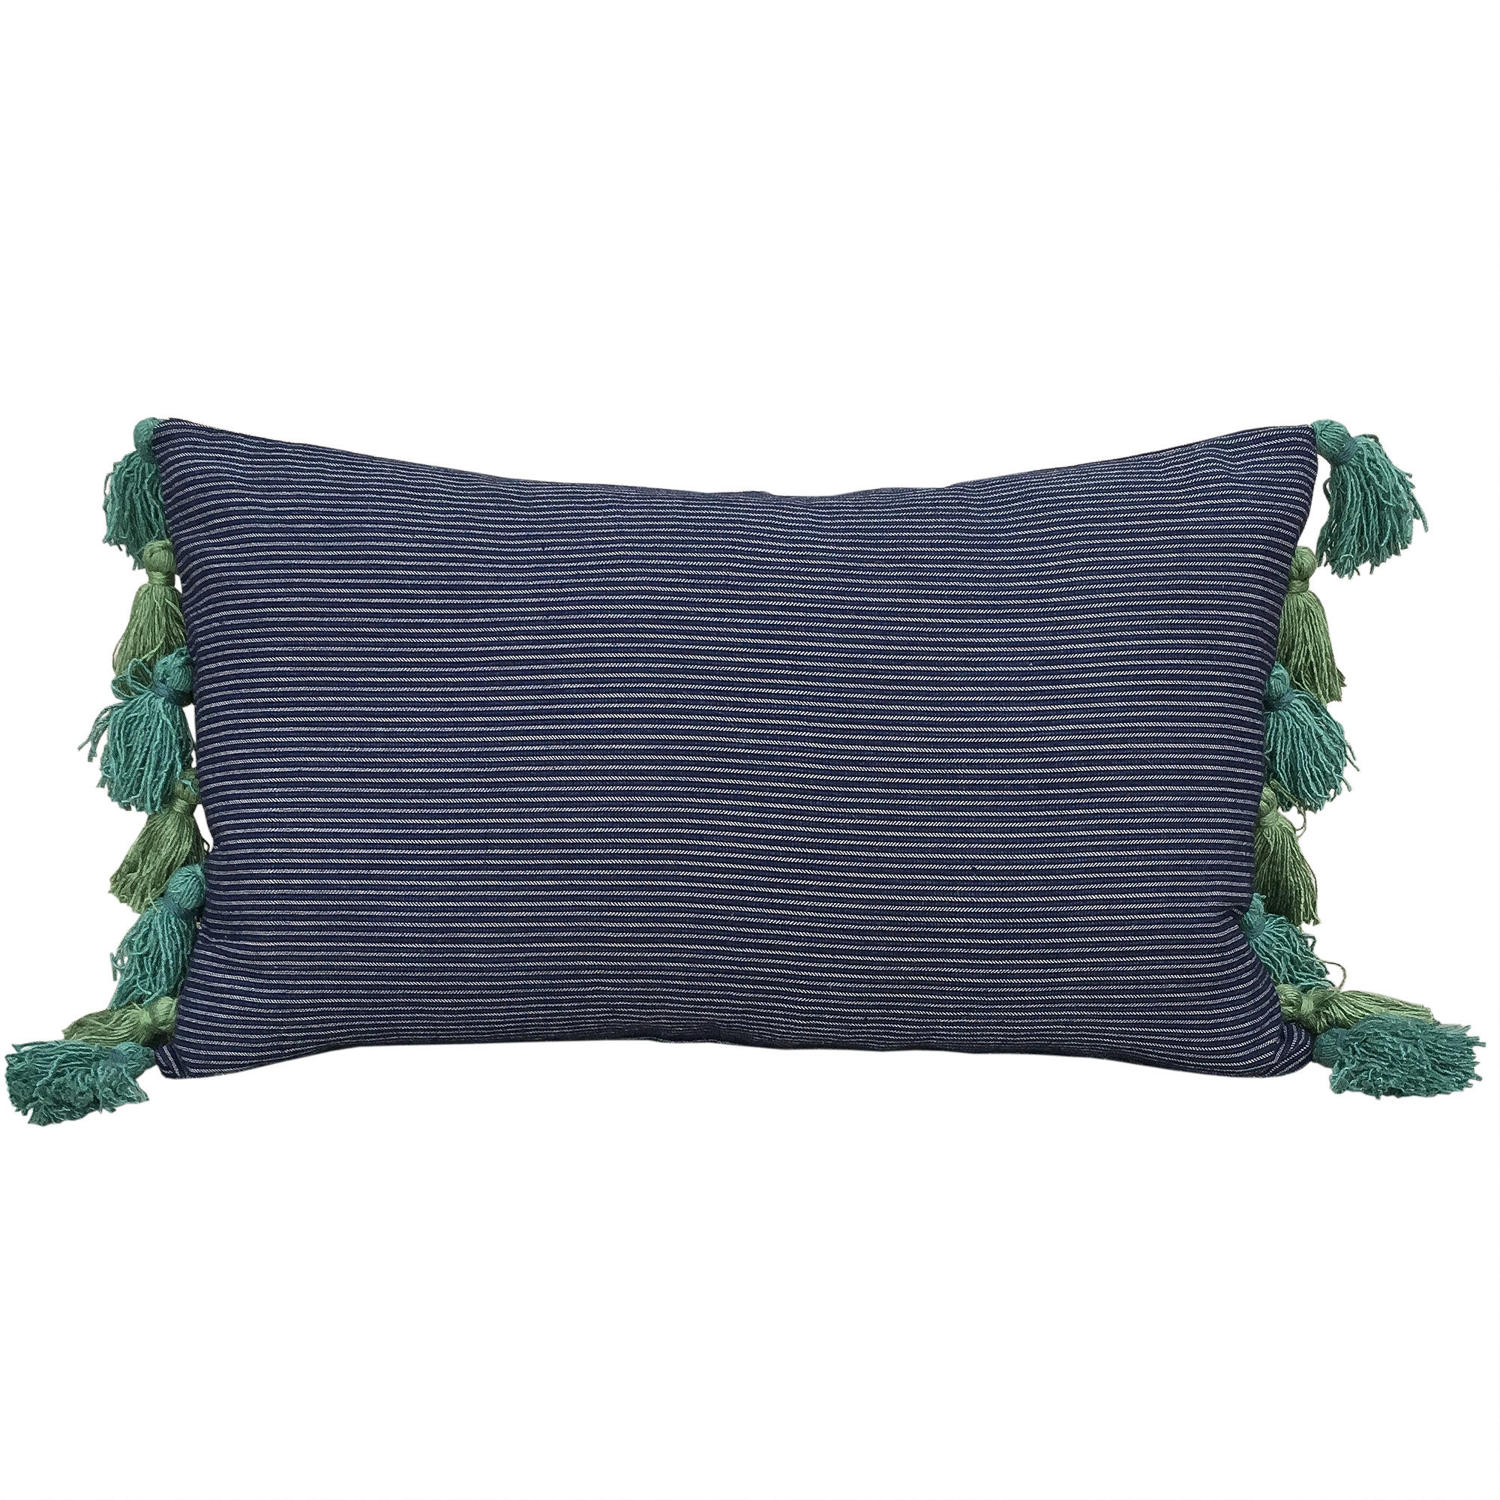 Buyi Cushion with Green & Teal Tassels